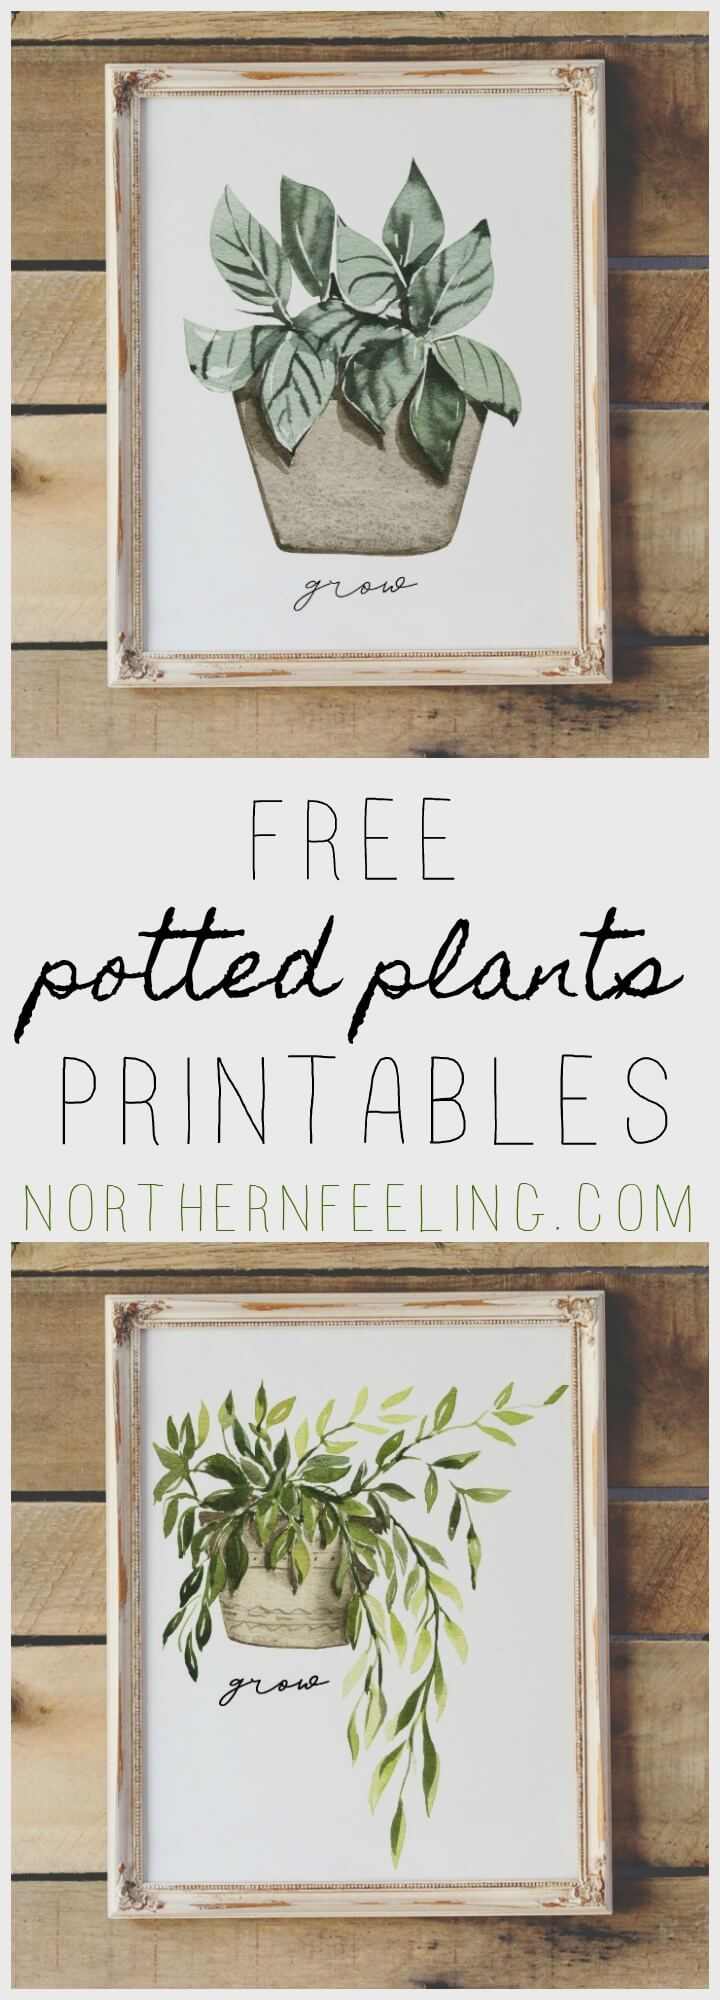 free watercolor potted plants printable // northernfeeling.com